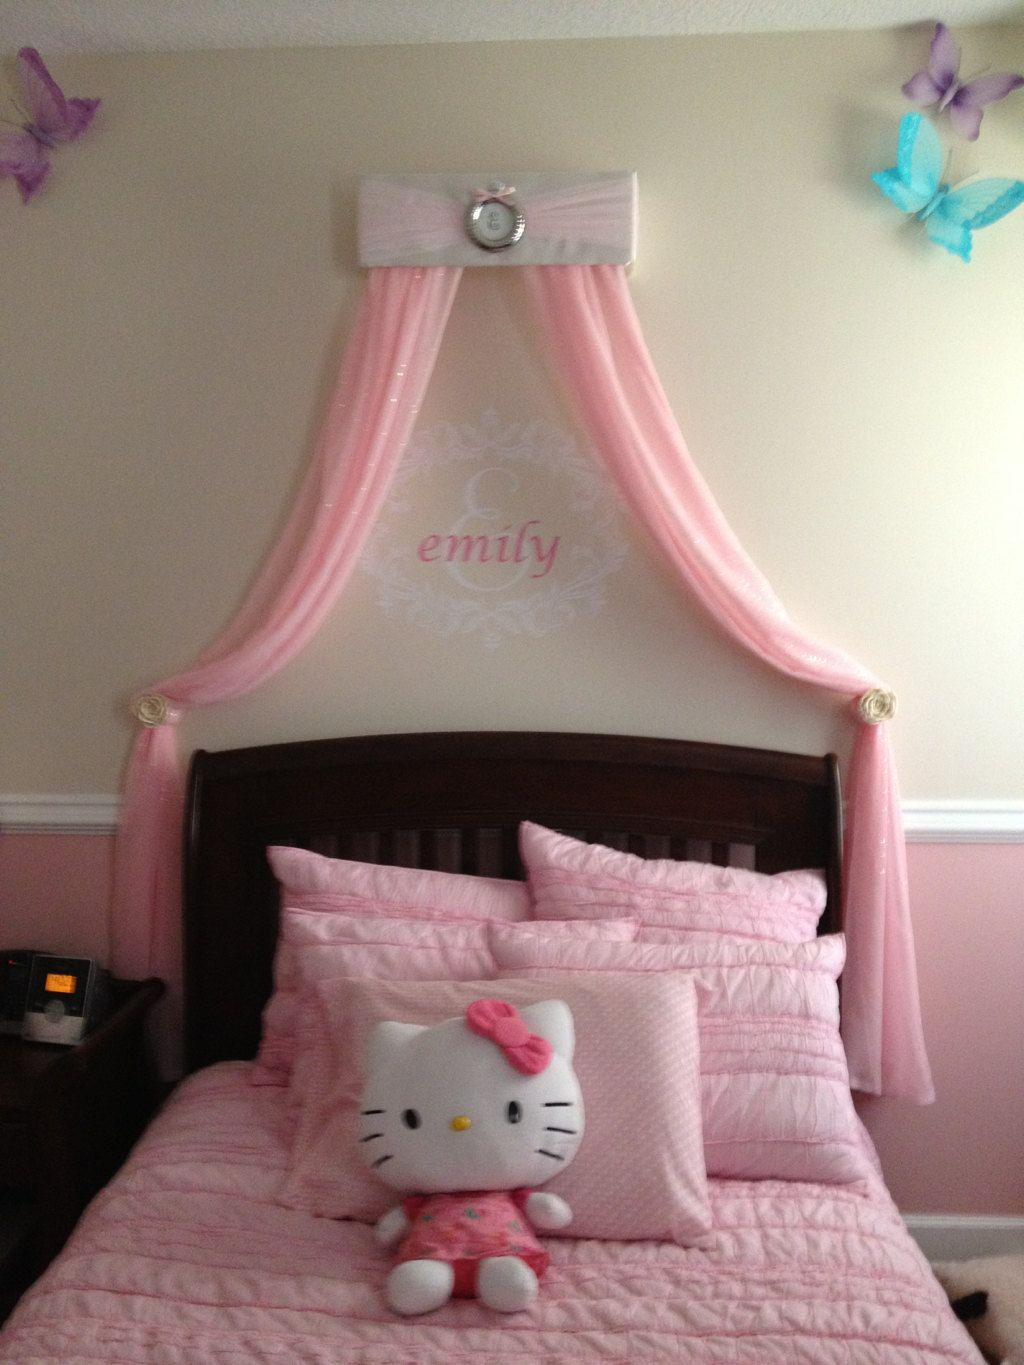 Bed Crown Princess CRIB Canopy nursery baby bedroom teester pelmet coronet cornice Personalized FREE White Pink Tulle TwIn Upholstered SaLe by ... & Bed Crown Princess CRIB Canopy nursery baby bedroom teester pelmet ...